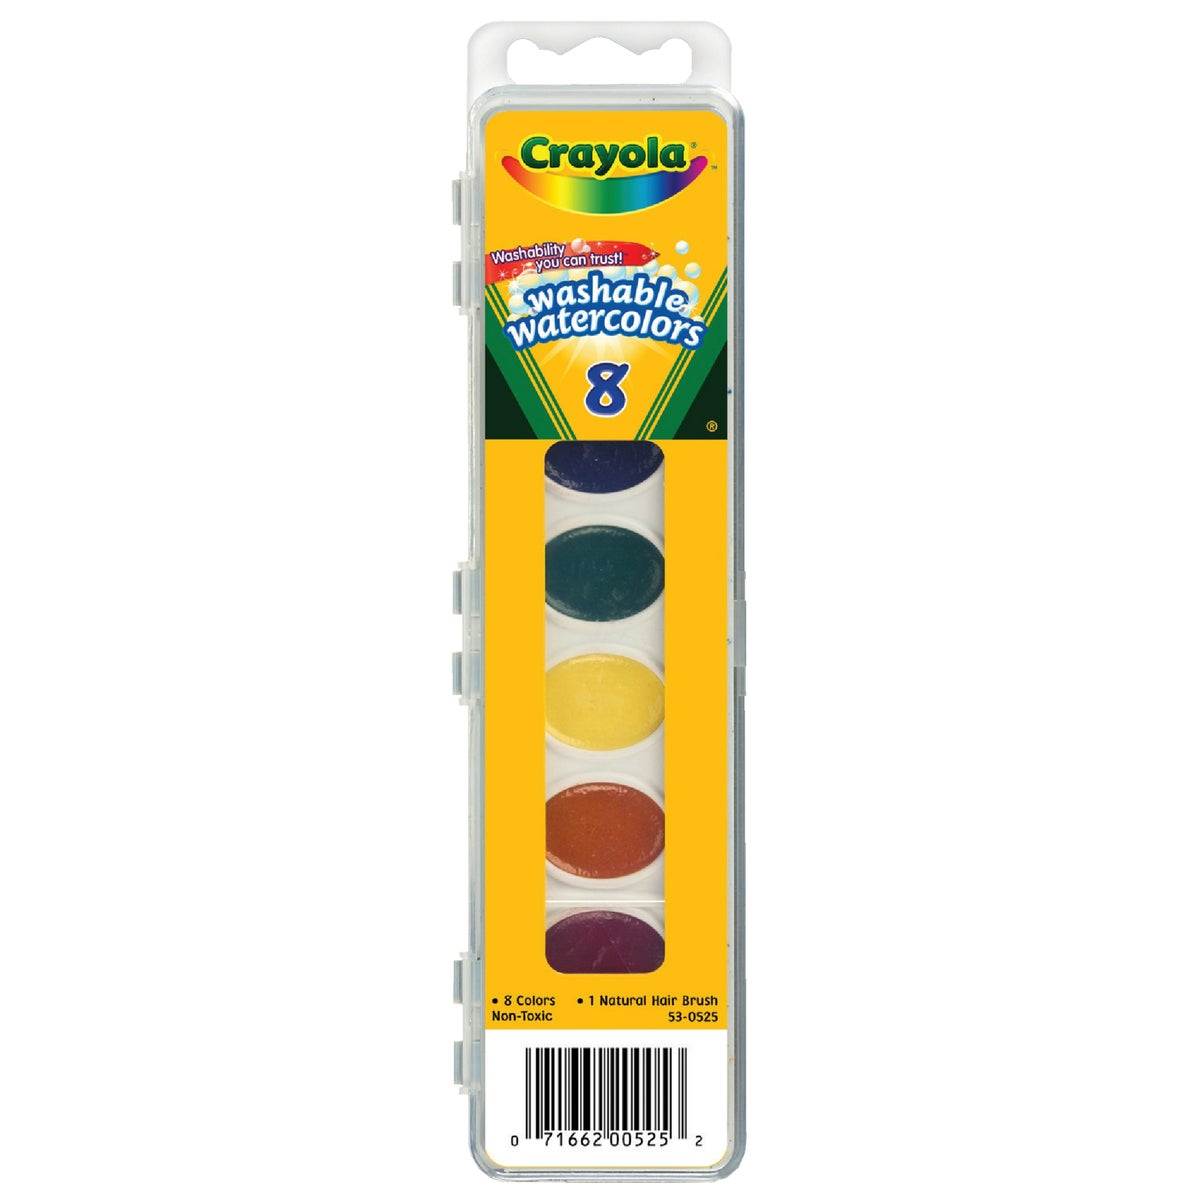 8CT WATERCOLORS - 53-0525 by Crayola L L C